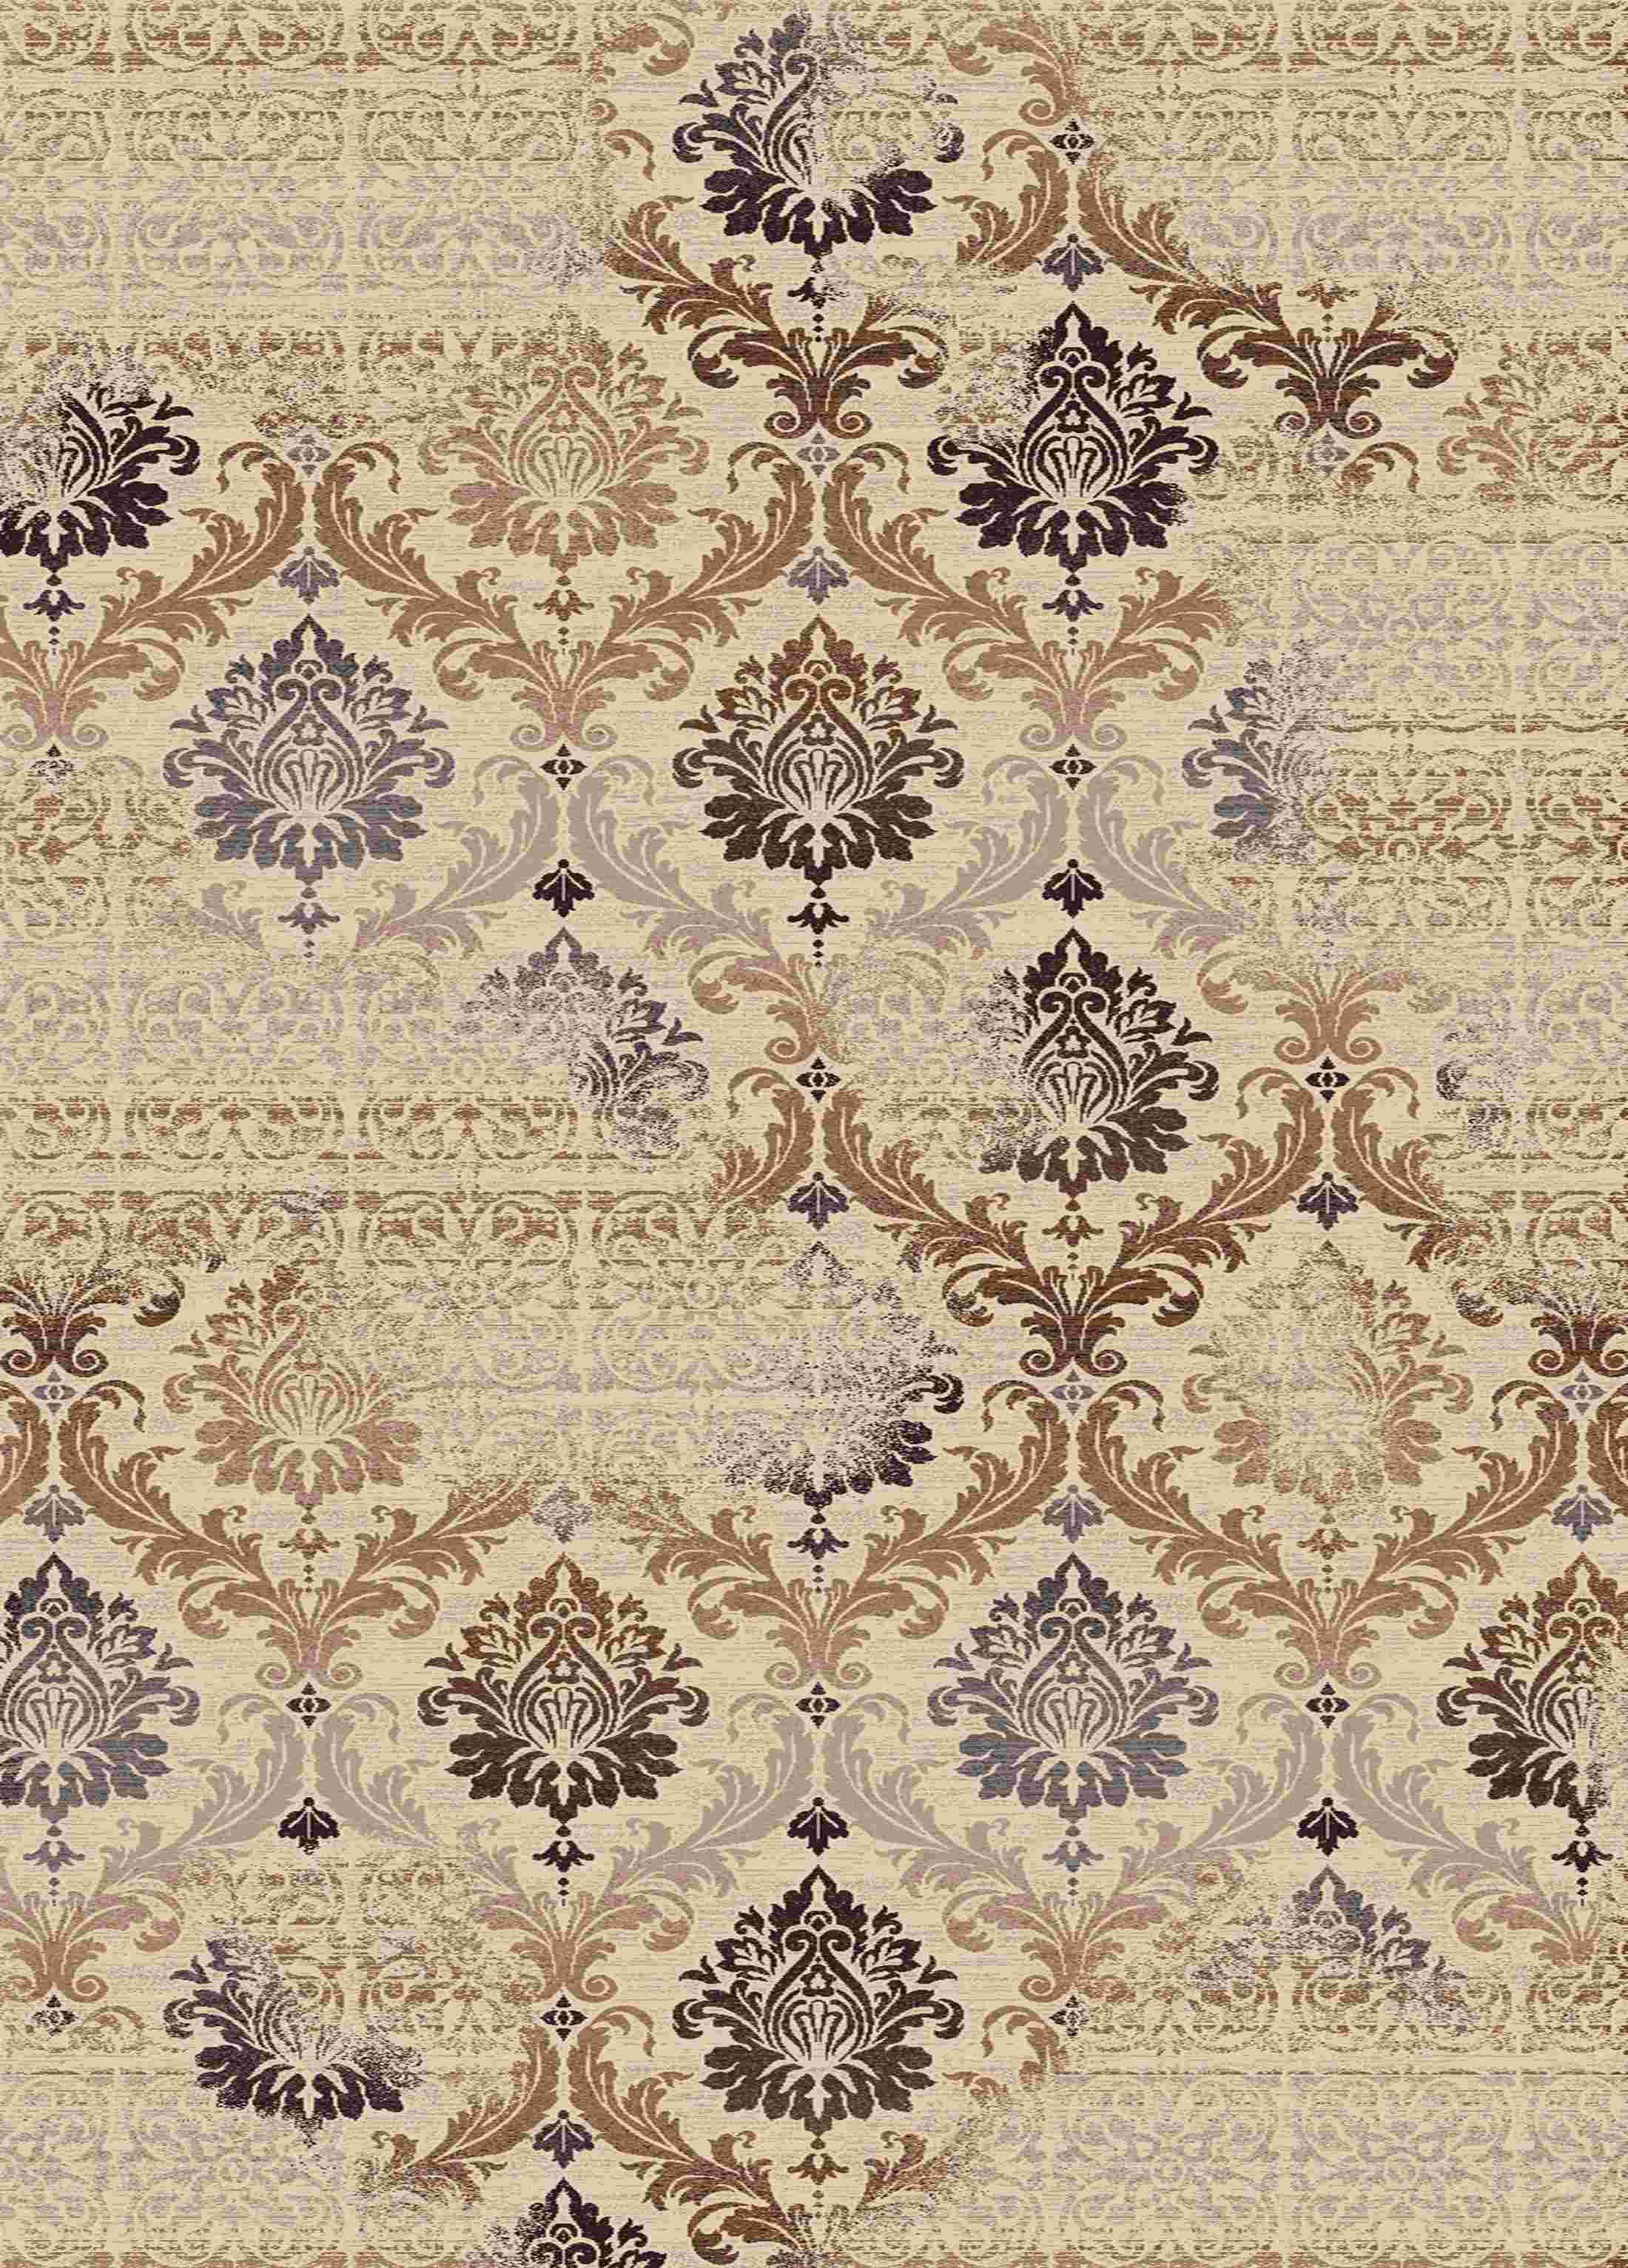 Dynamic Rugs Treasure Medallion/damask Cream 2198 Area Rug